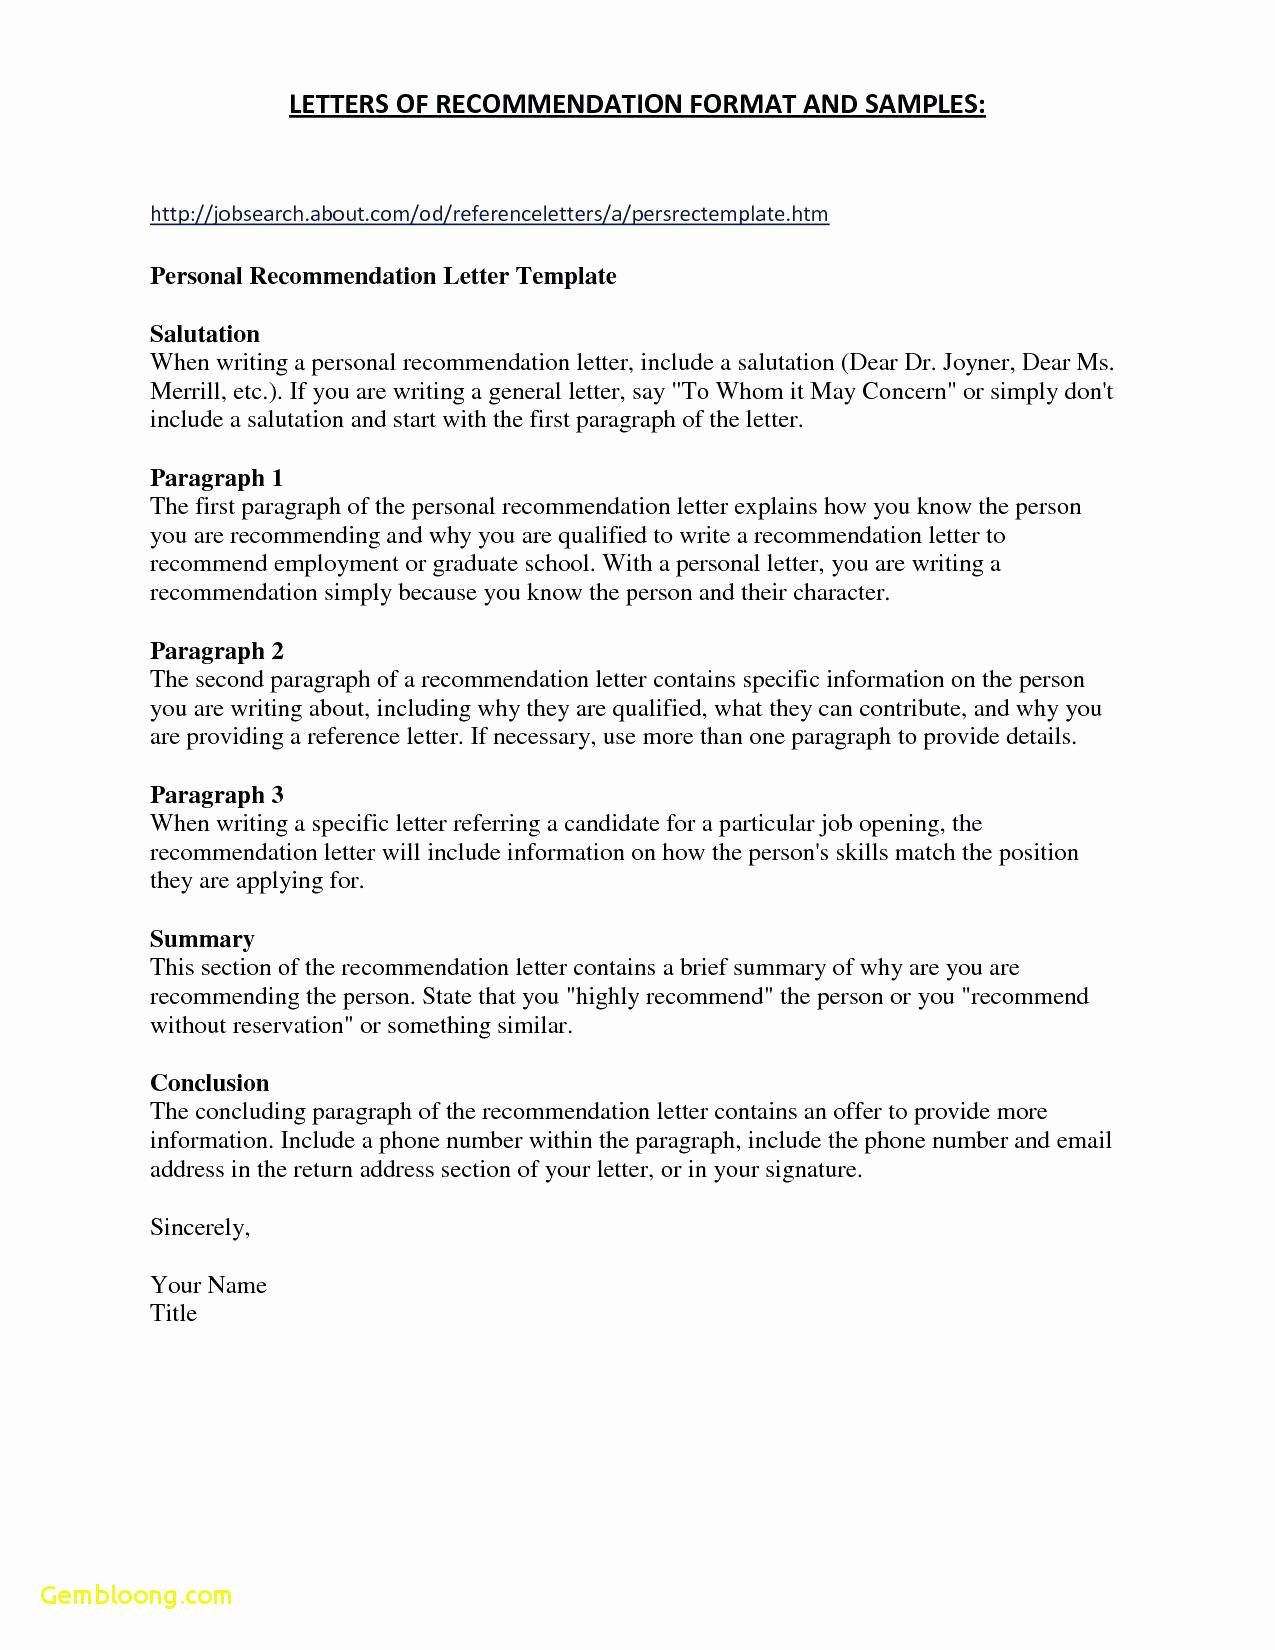 Patient Dismissal Letter for Behavior Template - Ceo Employment Contract Template